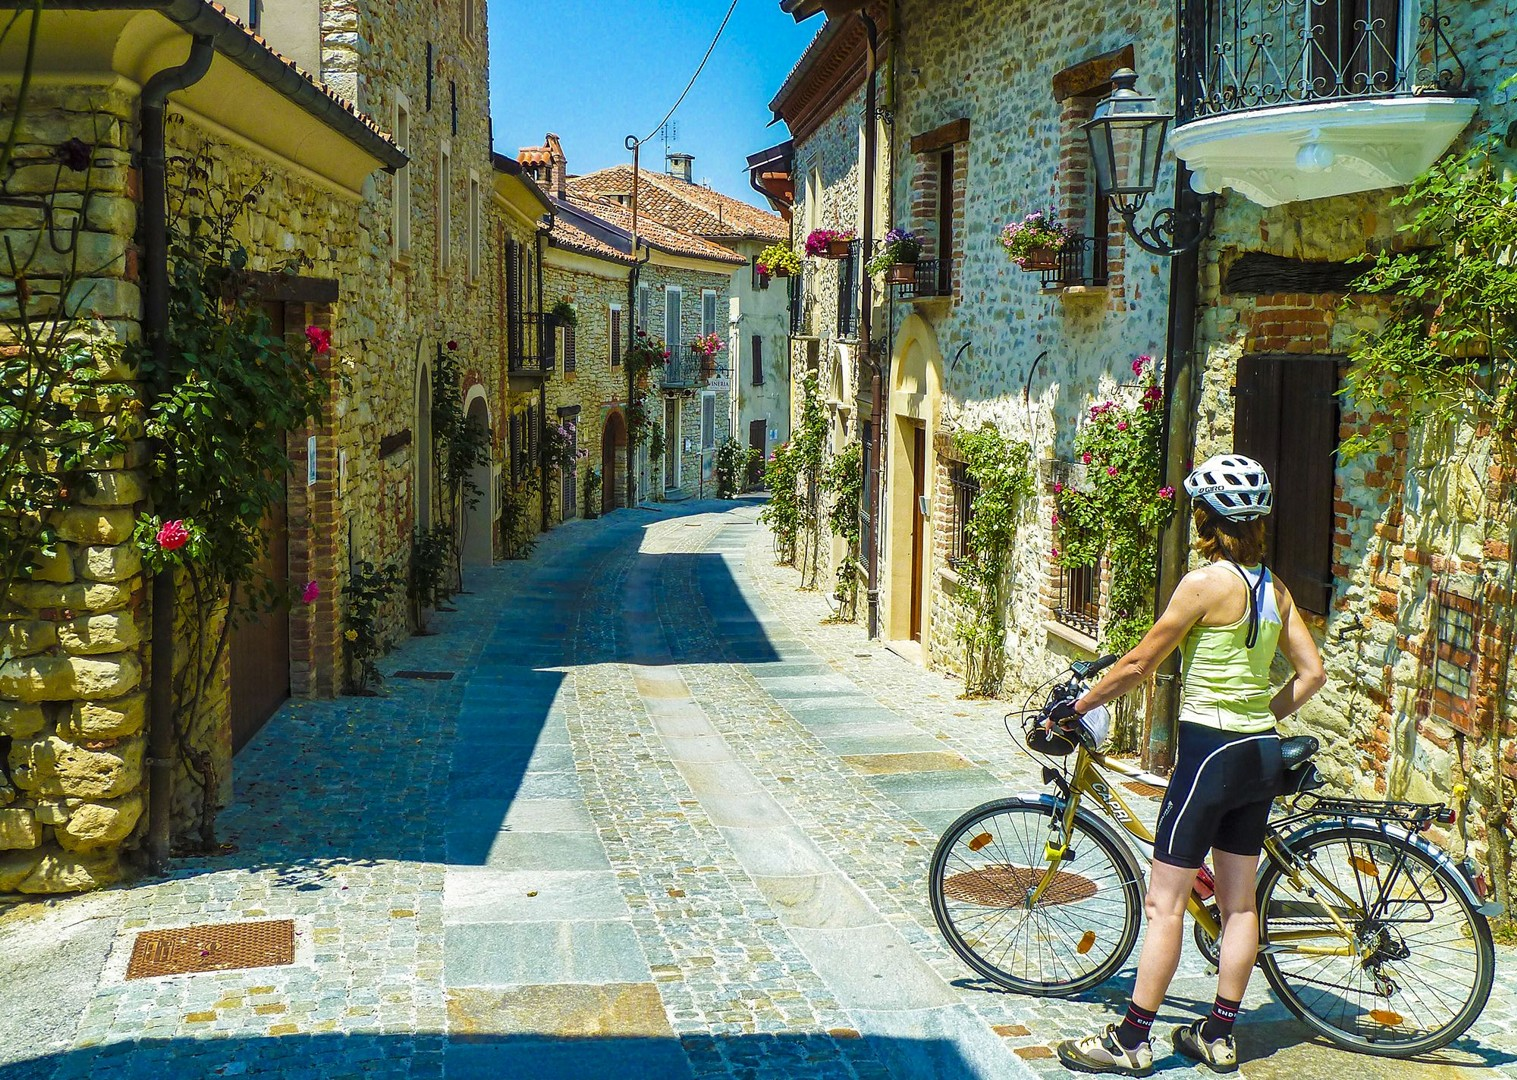 explore-culture-traditional-italy-piemonte-cycling-holiday-self-guided.jpg - Italy - Piemonte - Vineyards and Views - Self-Guided Leisure Cycling Holiday - Italia Leisure and Family Cycling